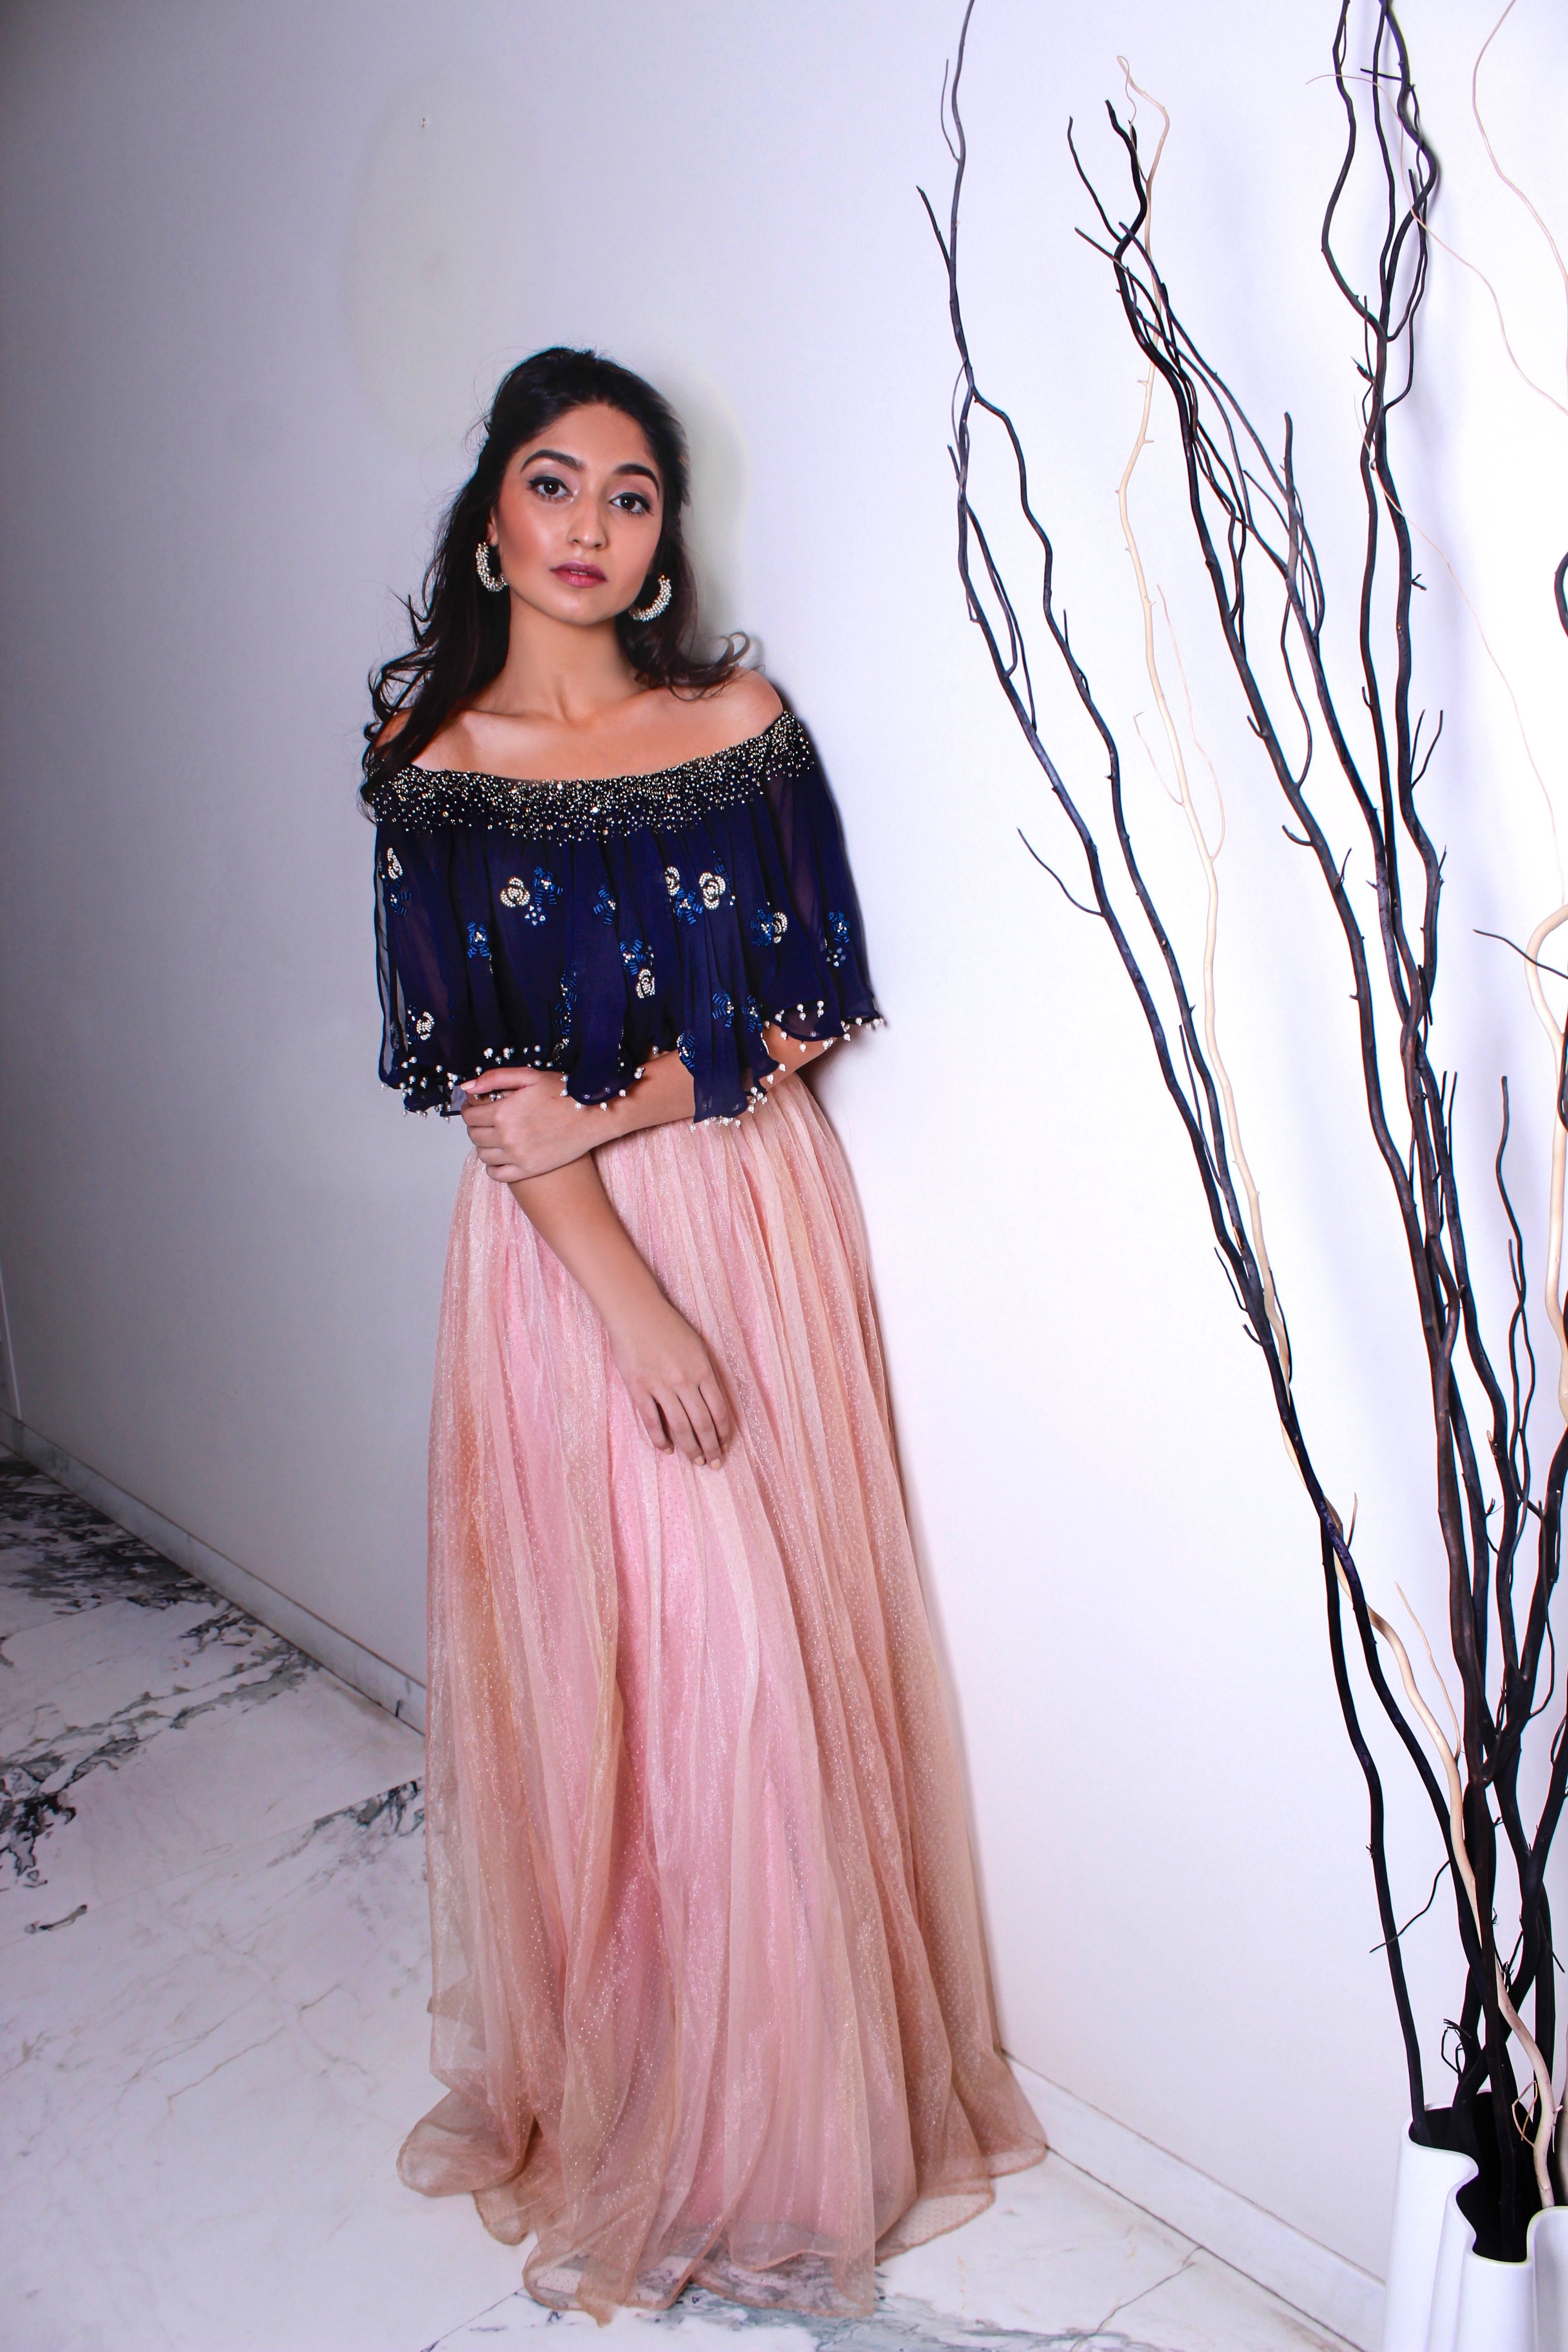 c28f35d72a572 Midnight Blue Off-The-Shoulder Lehenga  Georgette and swiss net midnight blue  off-the-shoulder crop top with pearl